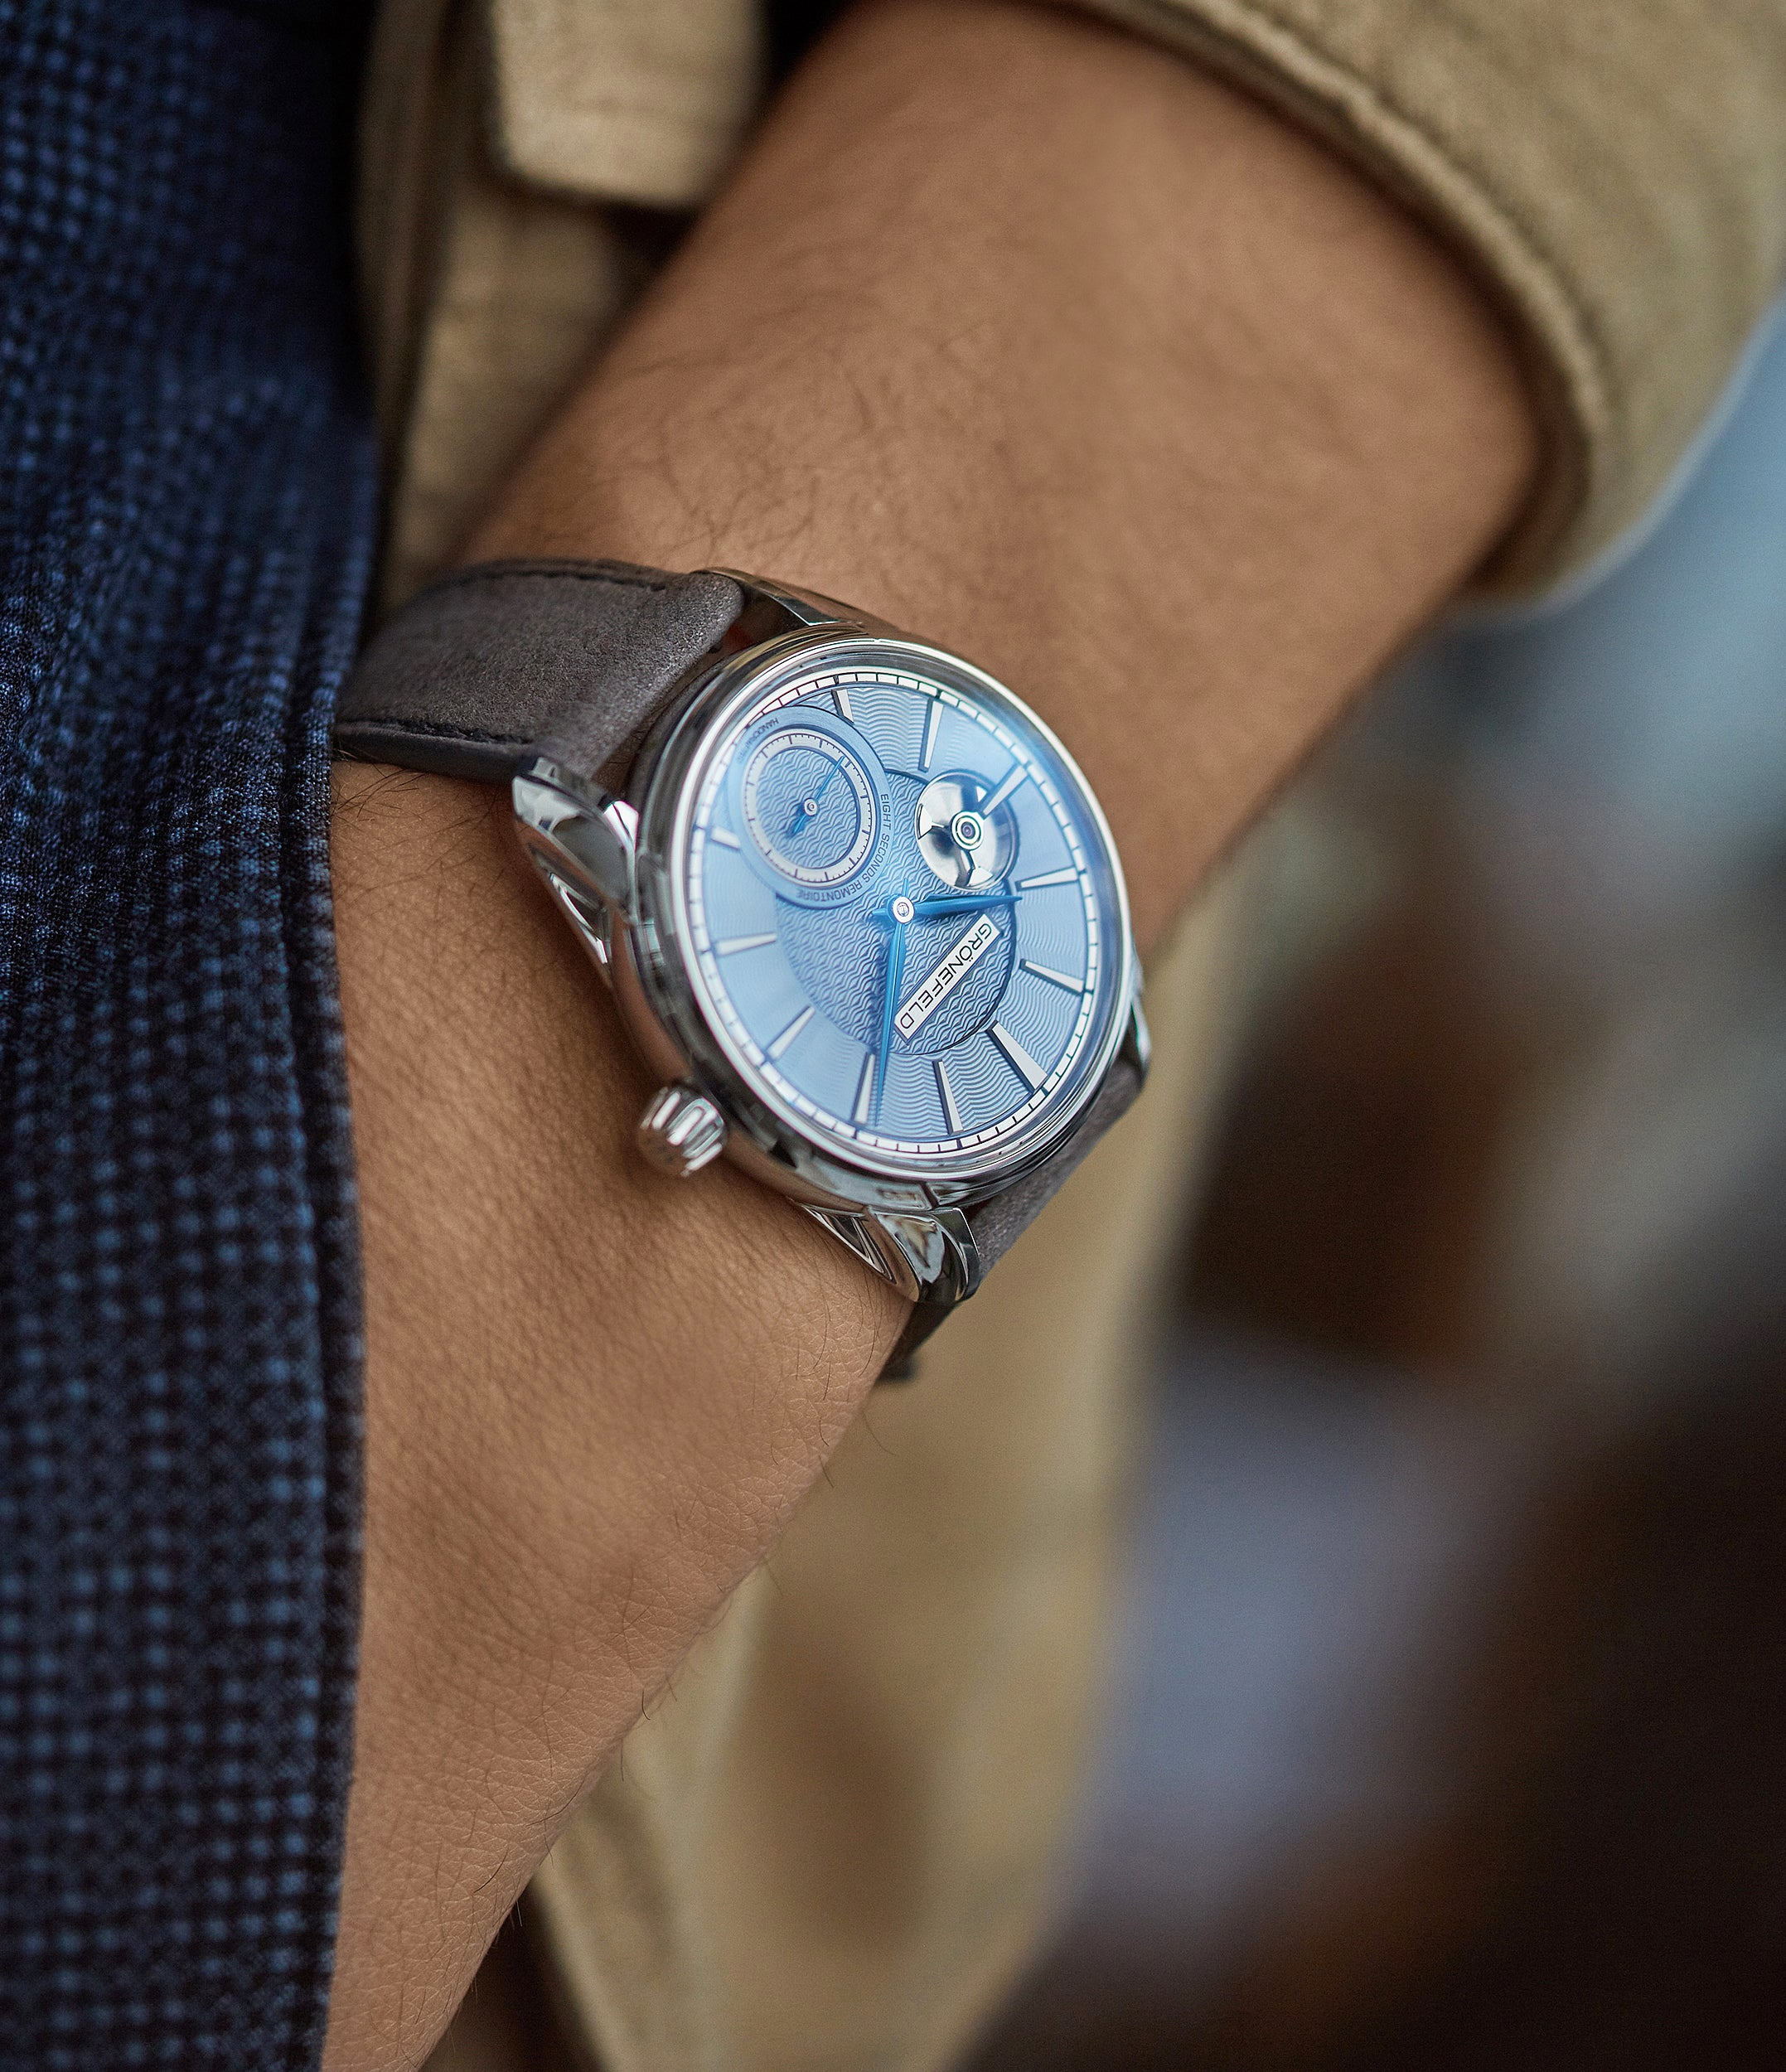 rare Grönefeld 1941 Remontoire light blue Voutilainen dial eight seconds remontoire time-only dress watch for sale online at A Collected Man London UK specialist of independent watchmakers